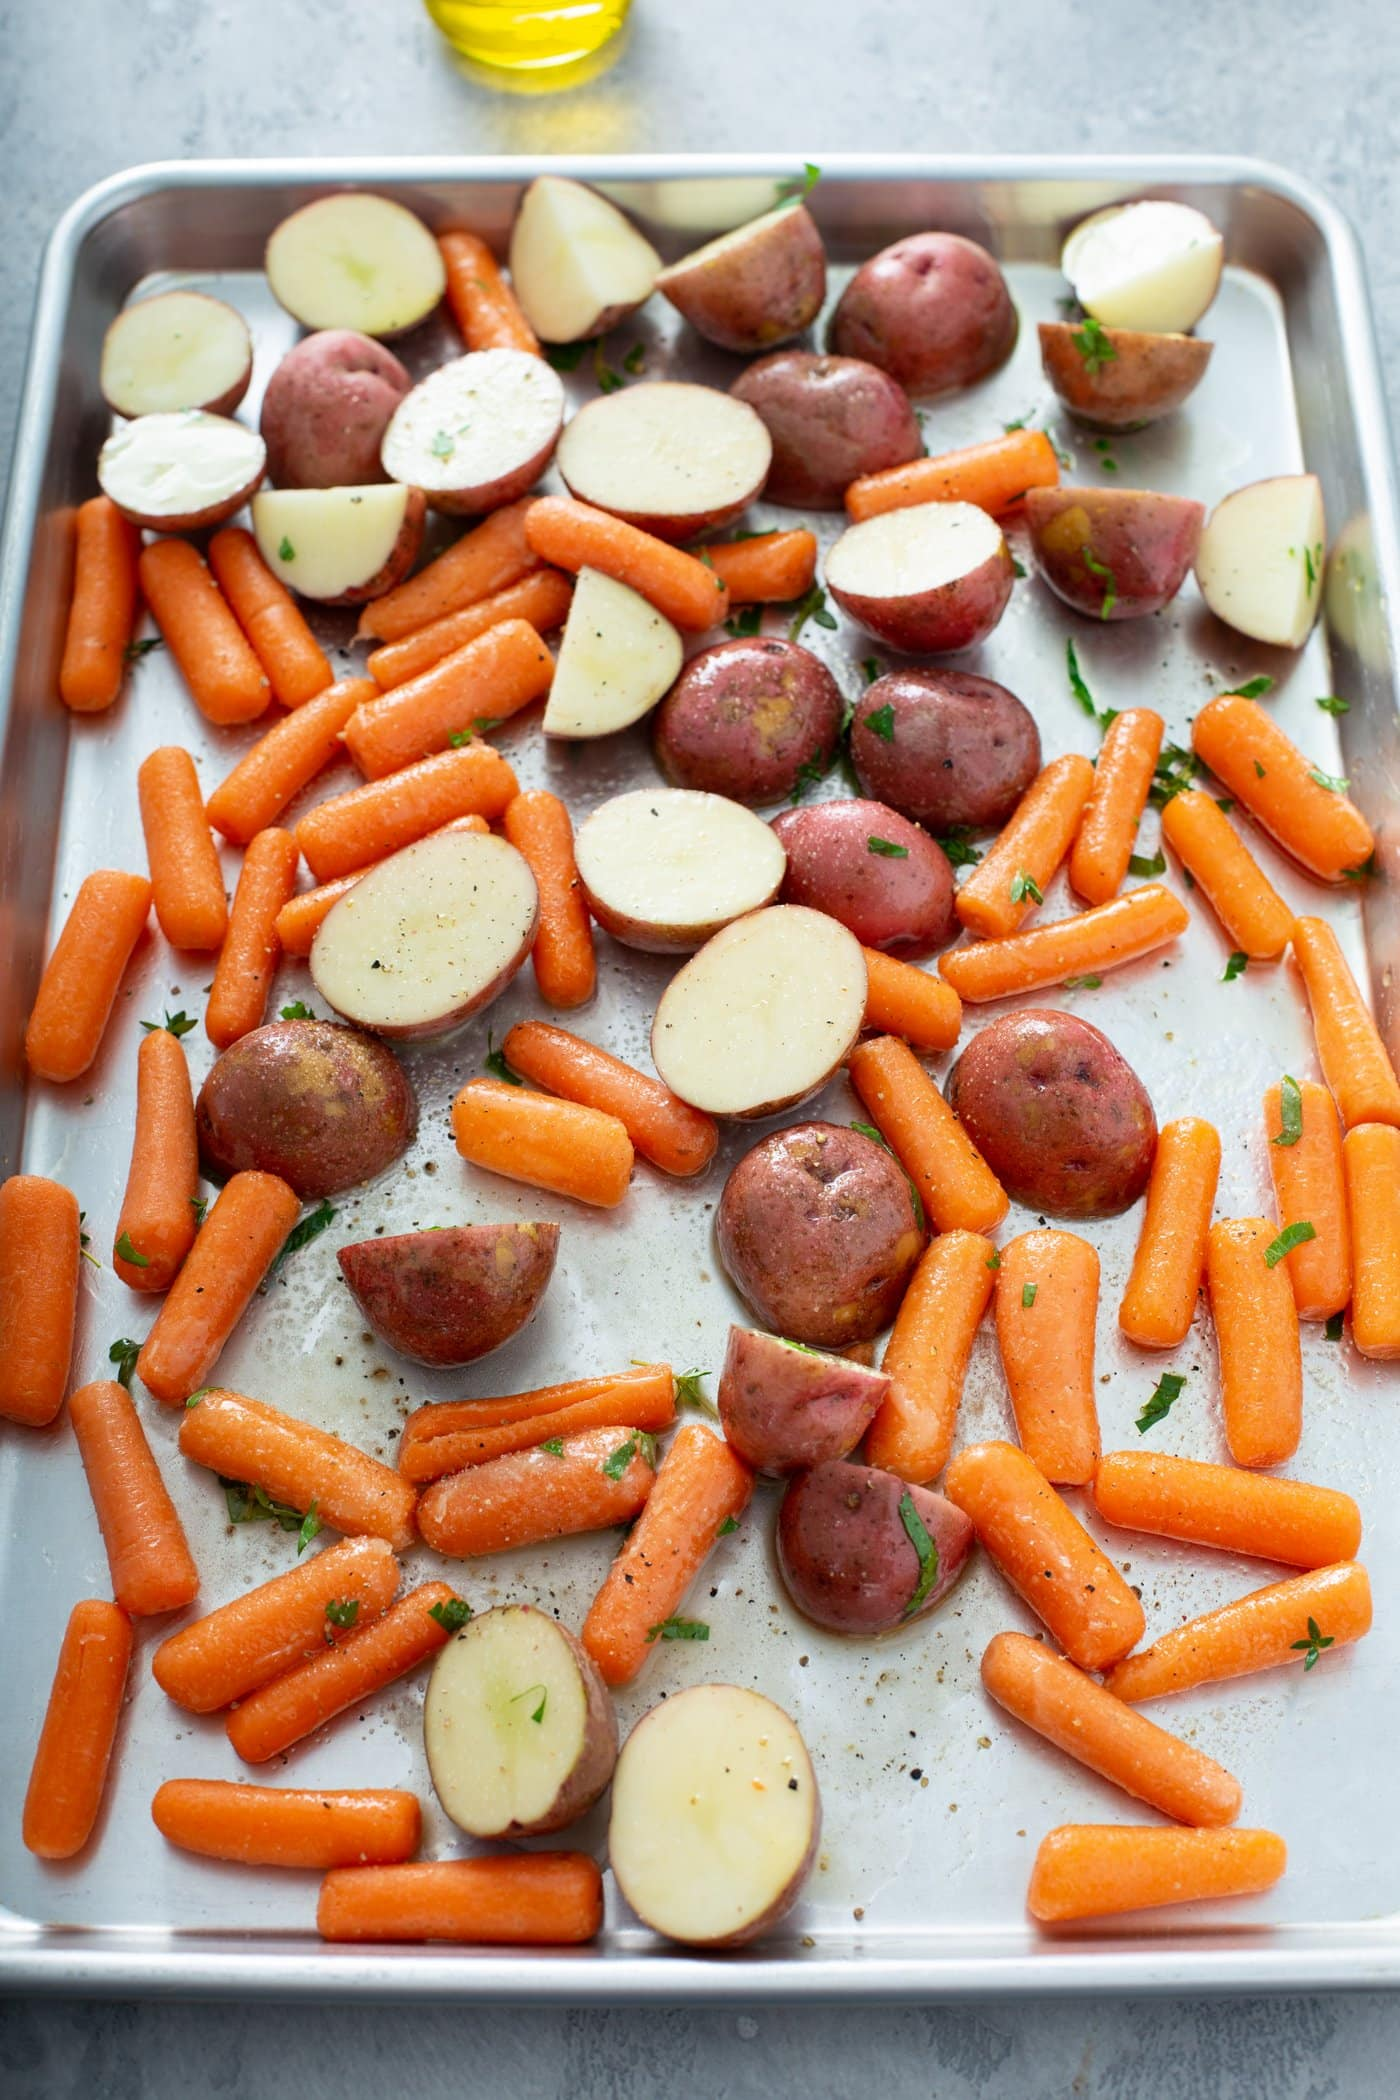 A sheet pan containing red potatoes that are cut in half and baby carrots.